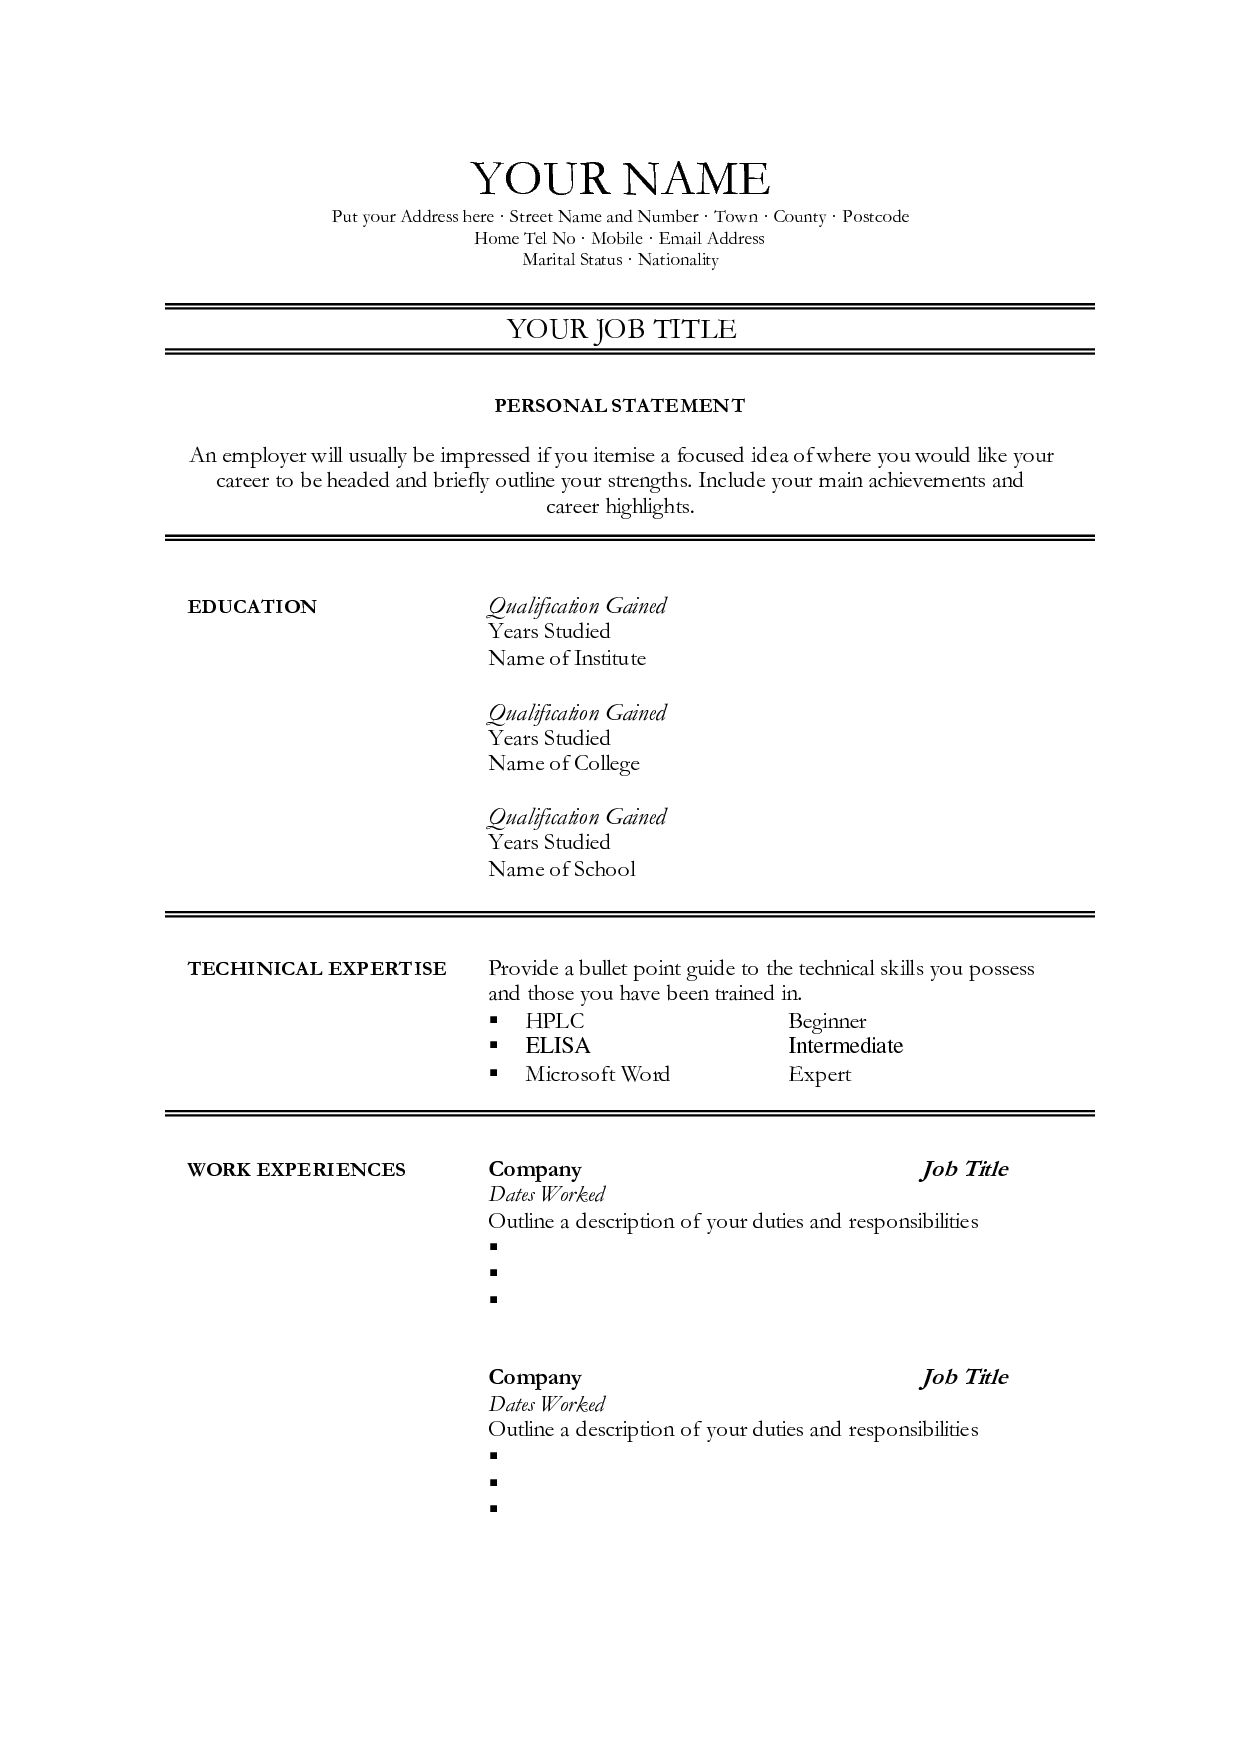 american career college optimal resume wustl email resume format